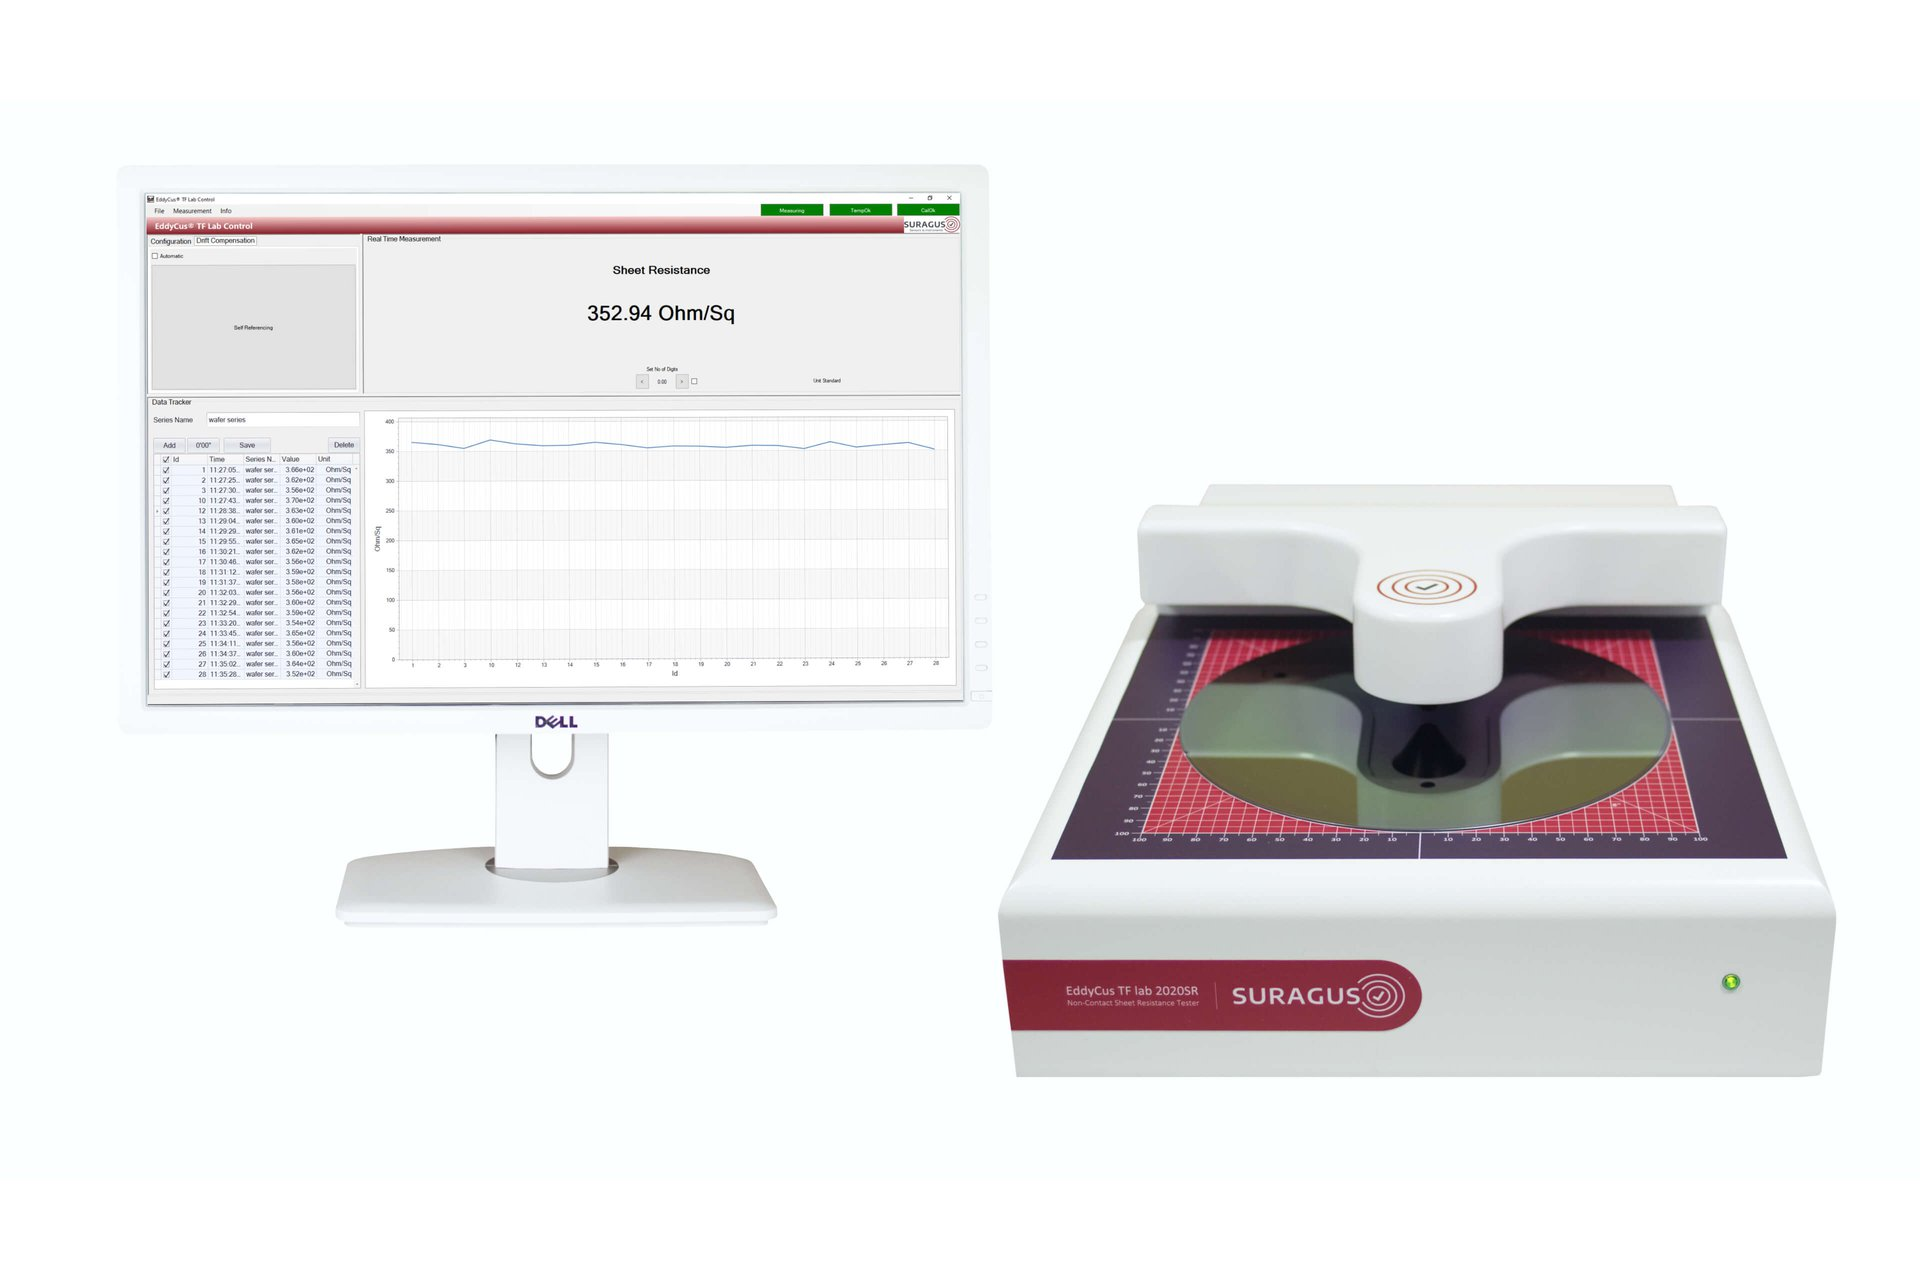 Sheet resistance measurement device EddyCus® TF lab 2020SR with wafer and software